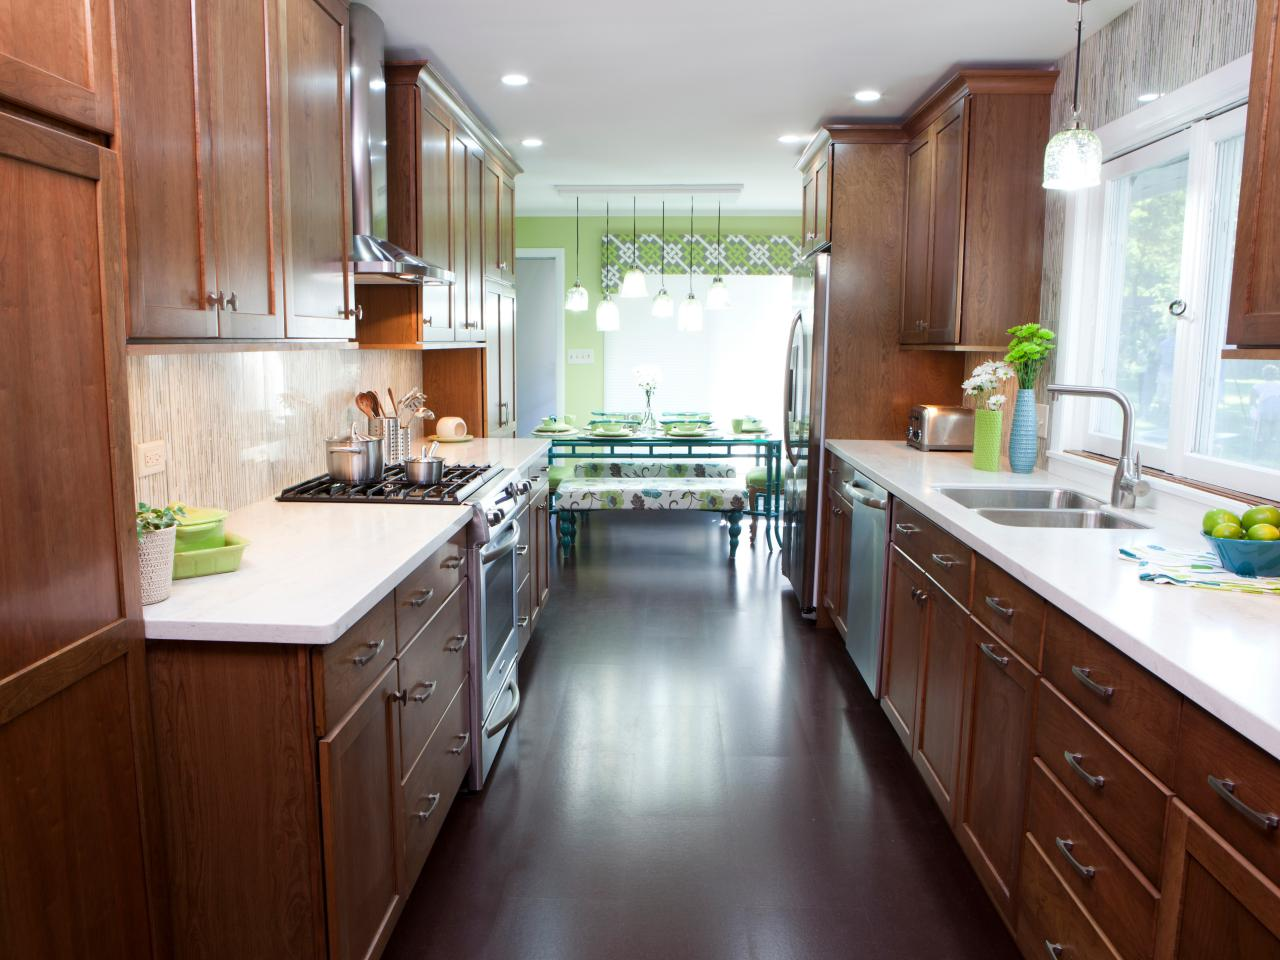 Galley kitchen designs hgtv for Galley kitchen remodel ideas